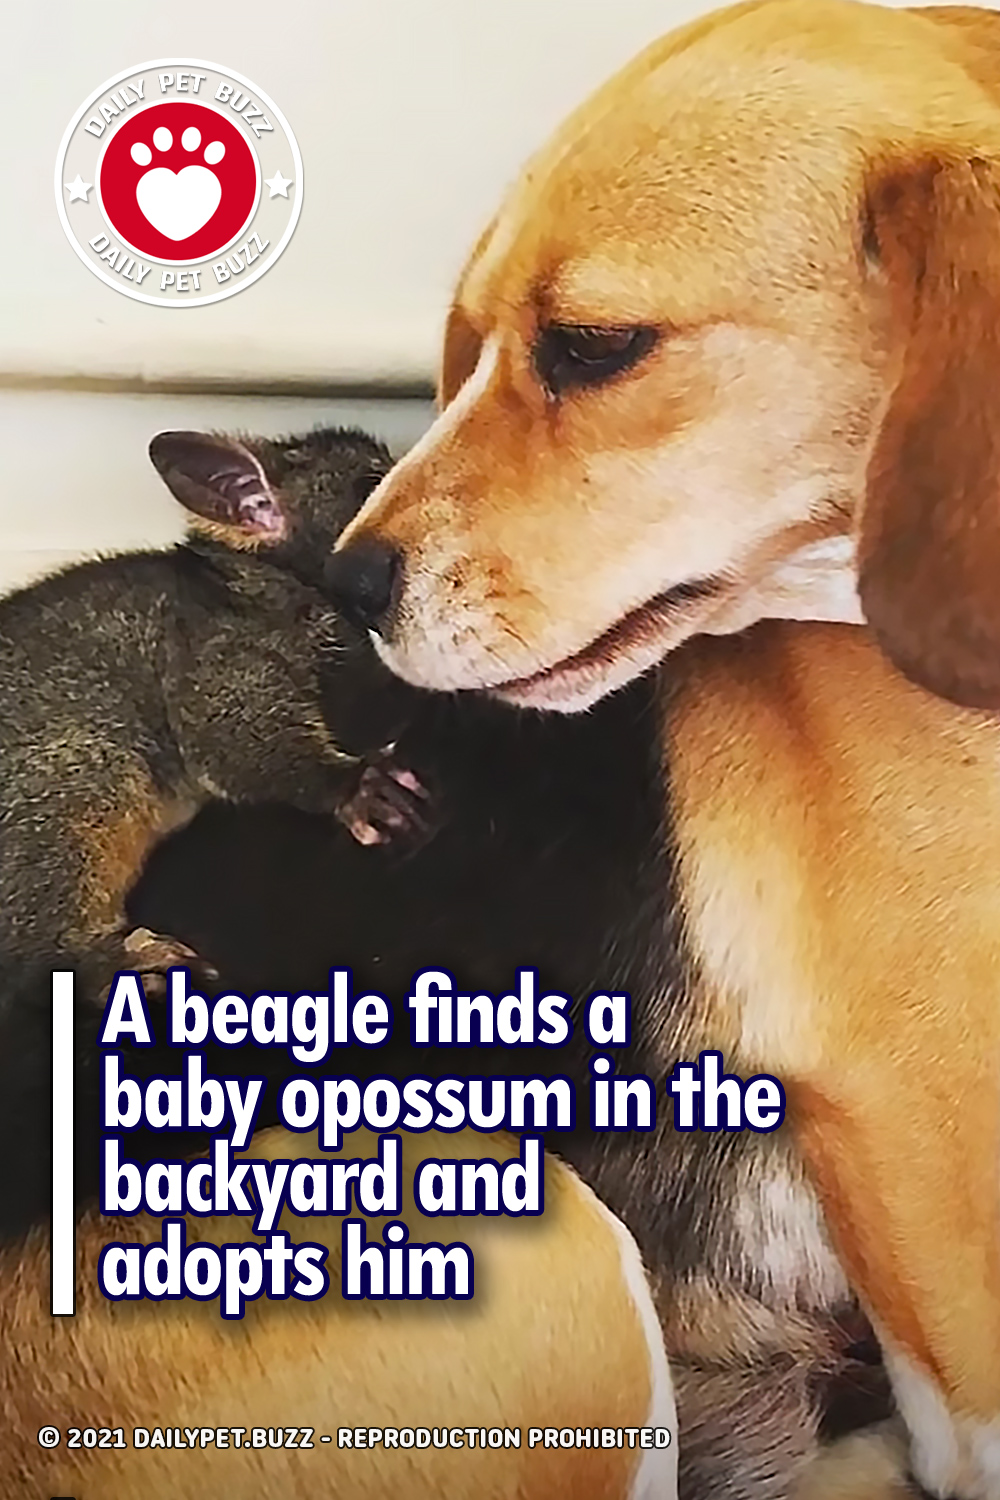 A beagle finds a baby opossum in the backyard and adopts him